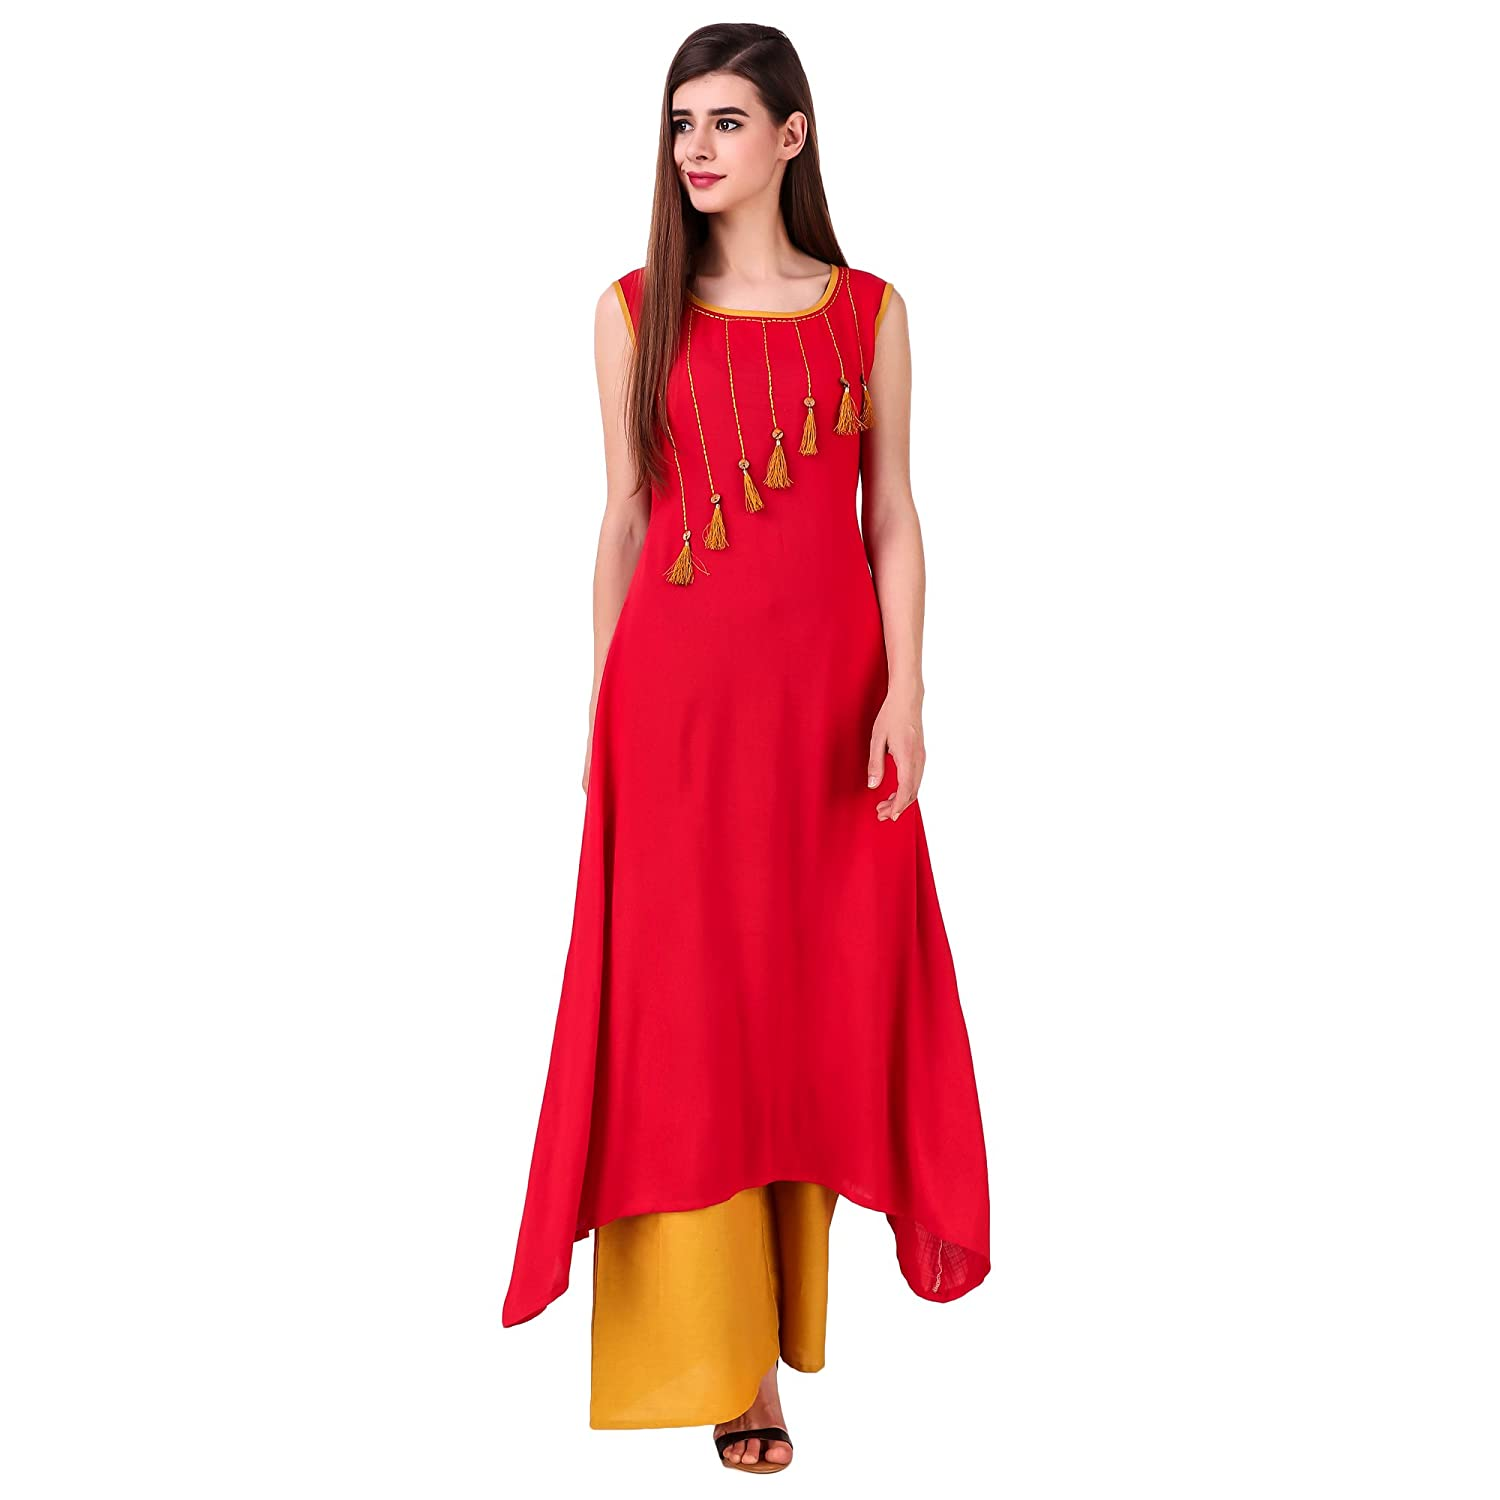 05d4ab1861 Sreshee Women s Cotton Designer Kurti with Palazzo Pants Set (Two Colour  Options)  Amazon.in  Clothing   Accessories